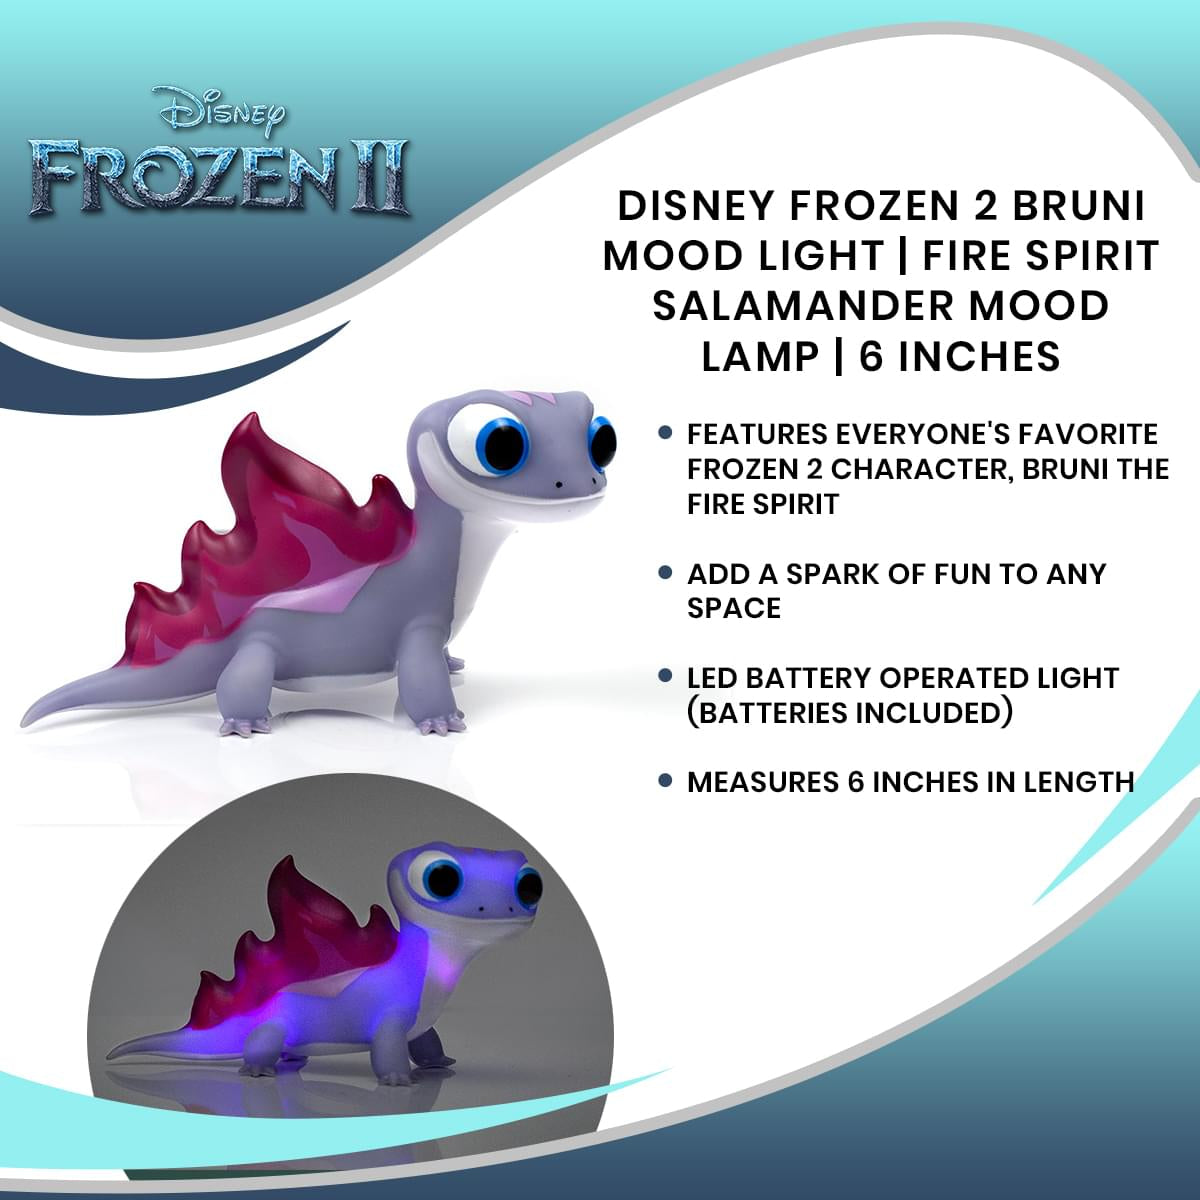 Disney Frozen 2 Bruni Mood Light | Fire Spirit Salamander Mood Lamp | 6 Inches